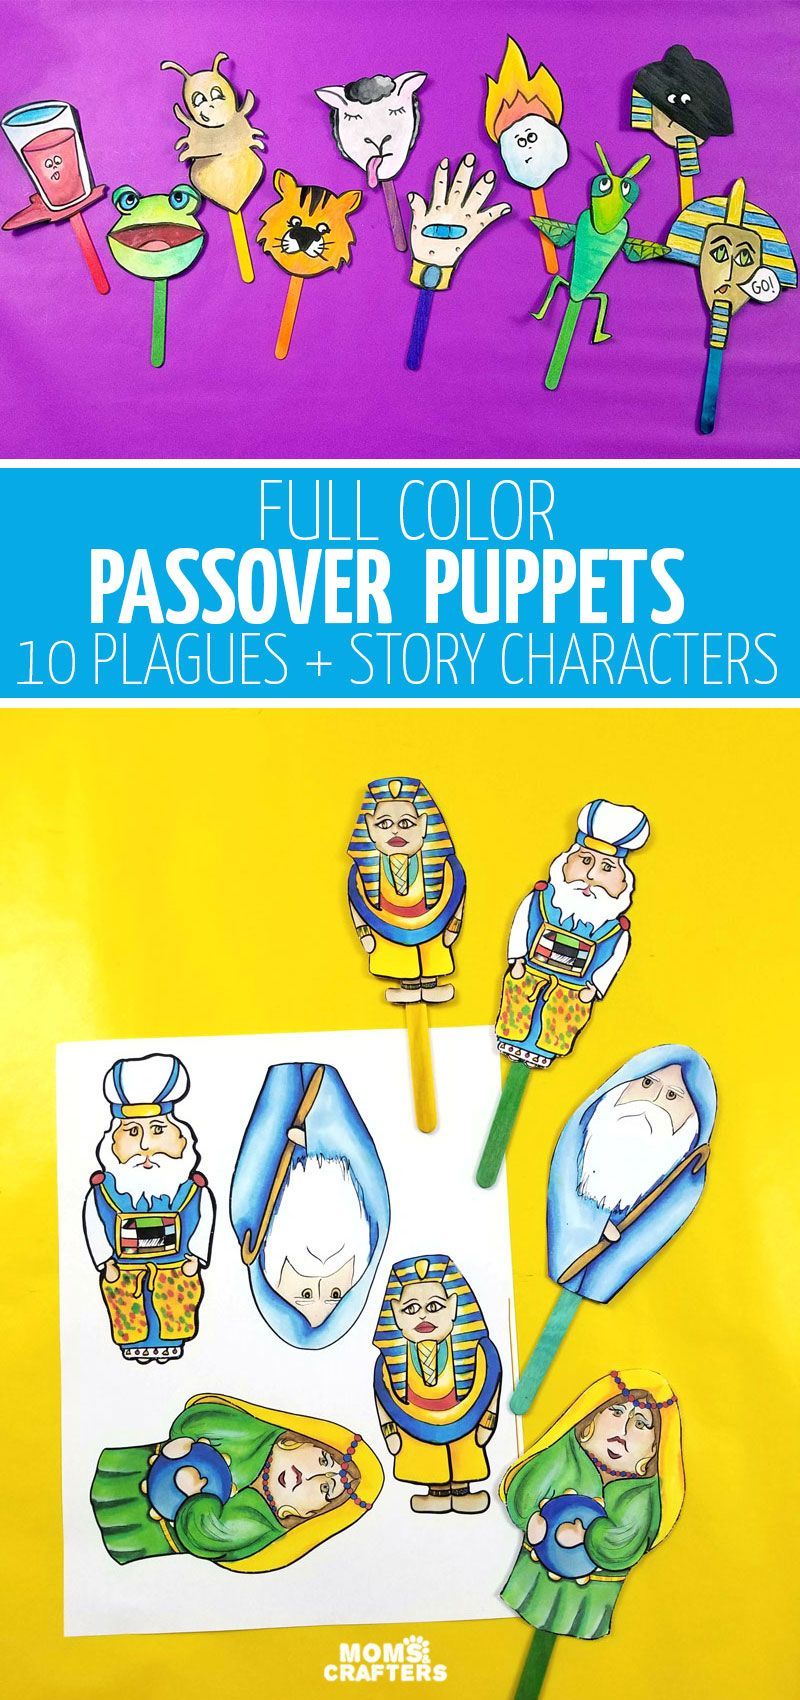 Passover Toy For Kids Passover Crafts Pesach Crafts Crafts For Kids [ 1700 x 800 Pixel ]